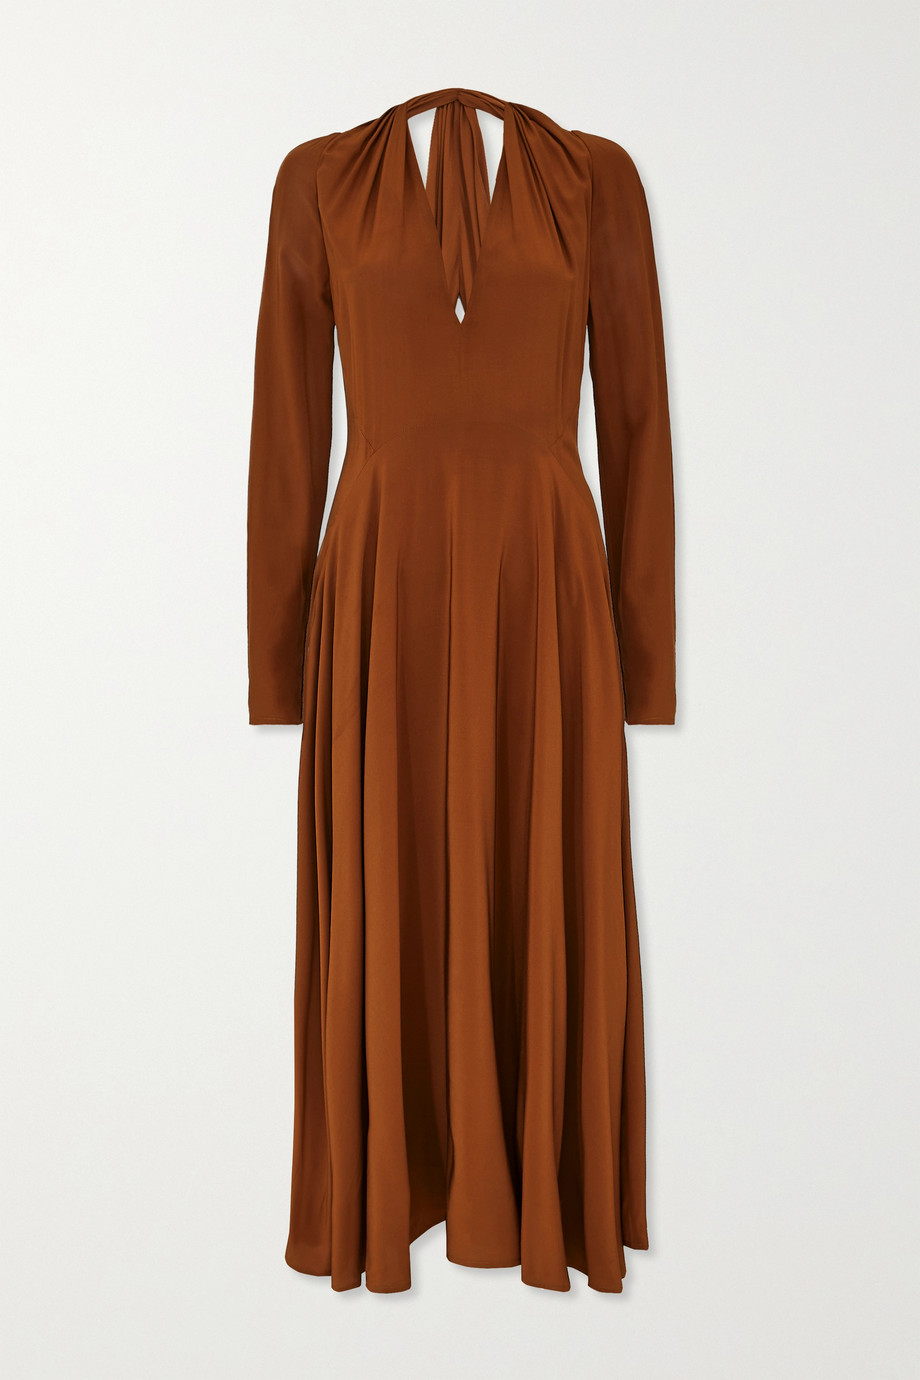 Victoria Beckham Cutout gathered silk midi dress